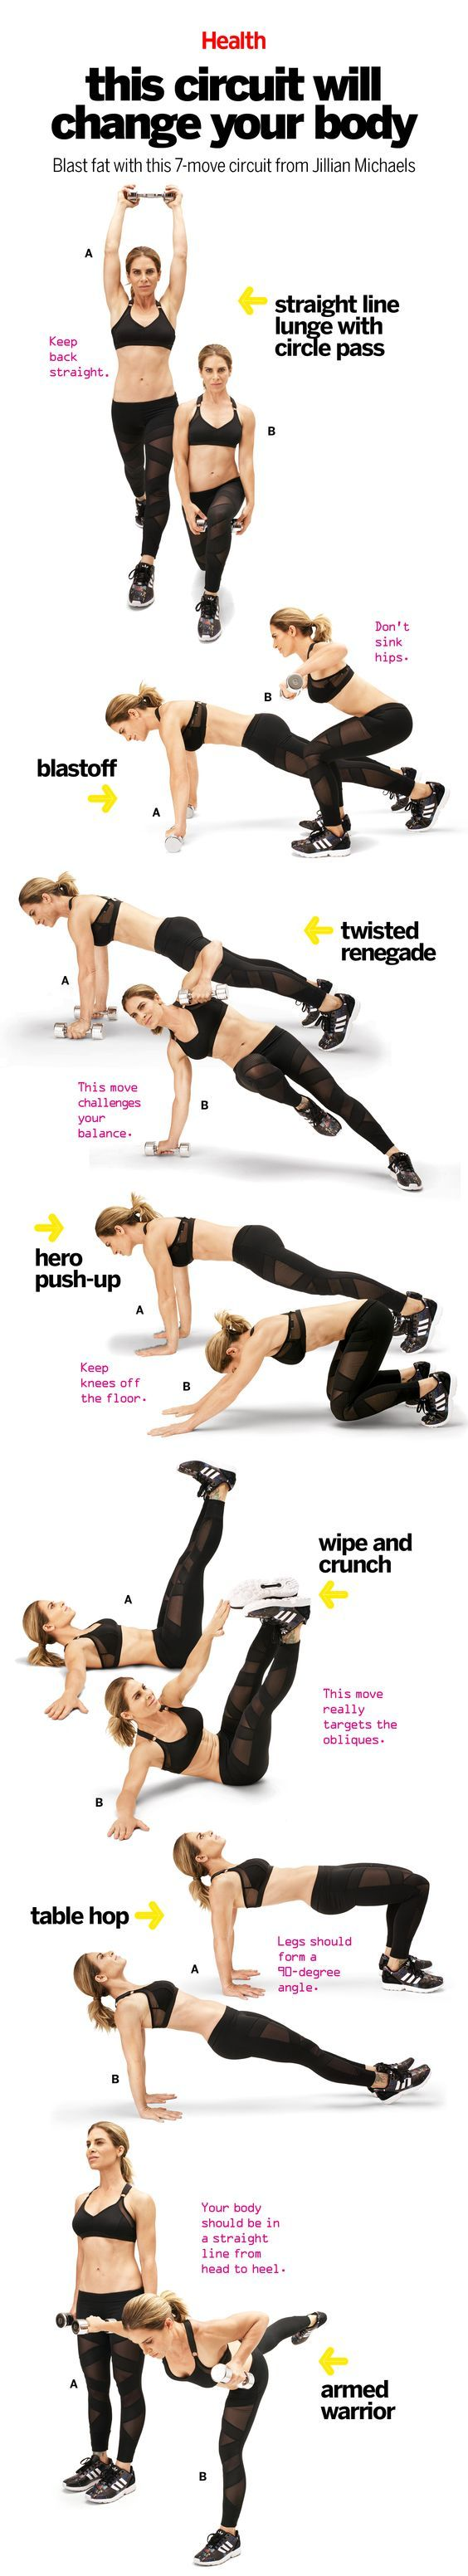 This comprehensive workout, which Jillian Michaels created for Health, trains the muscles in a way that will bust through even the most persistent plateau. Do it four times a week, paired with 20 minutes of high-intensity interval training, and watch your body be transformed. | Health.com: